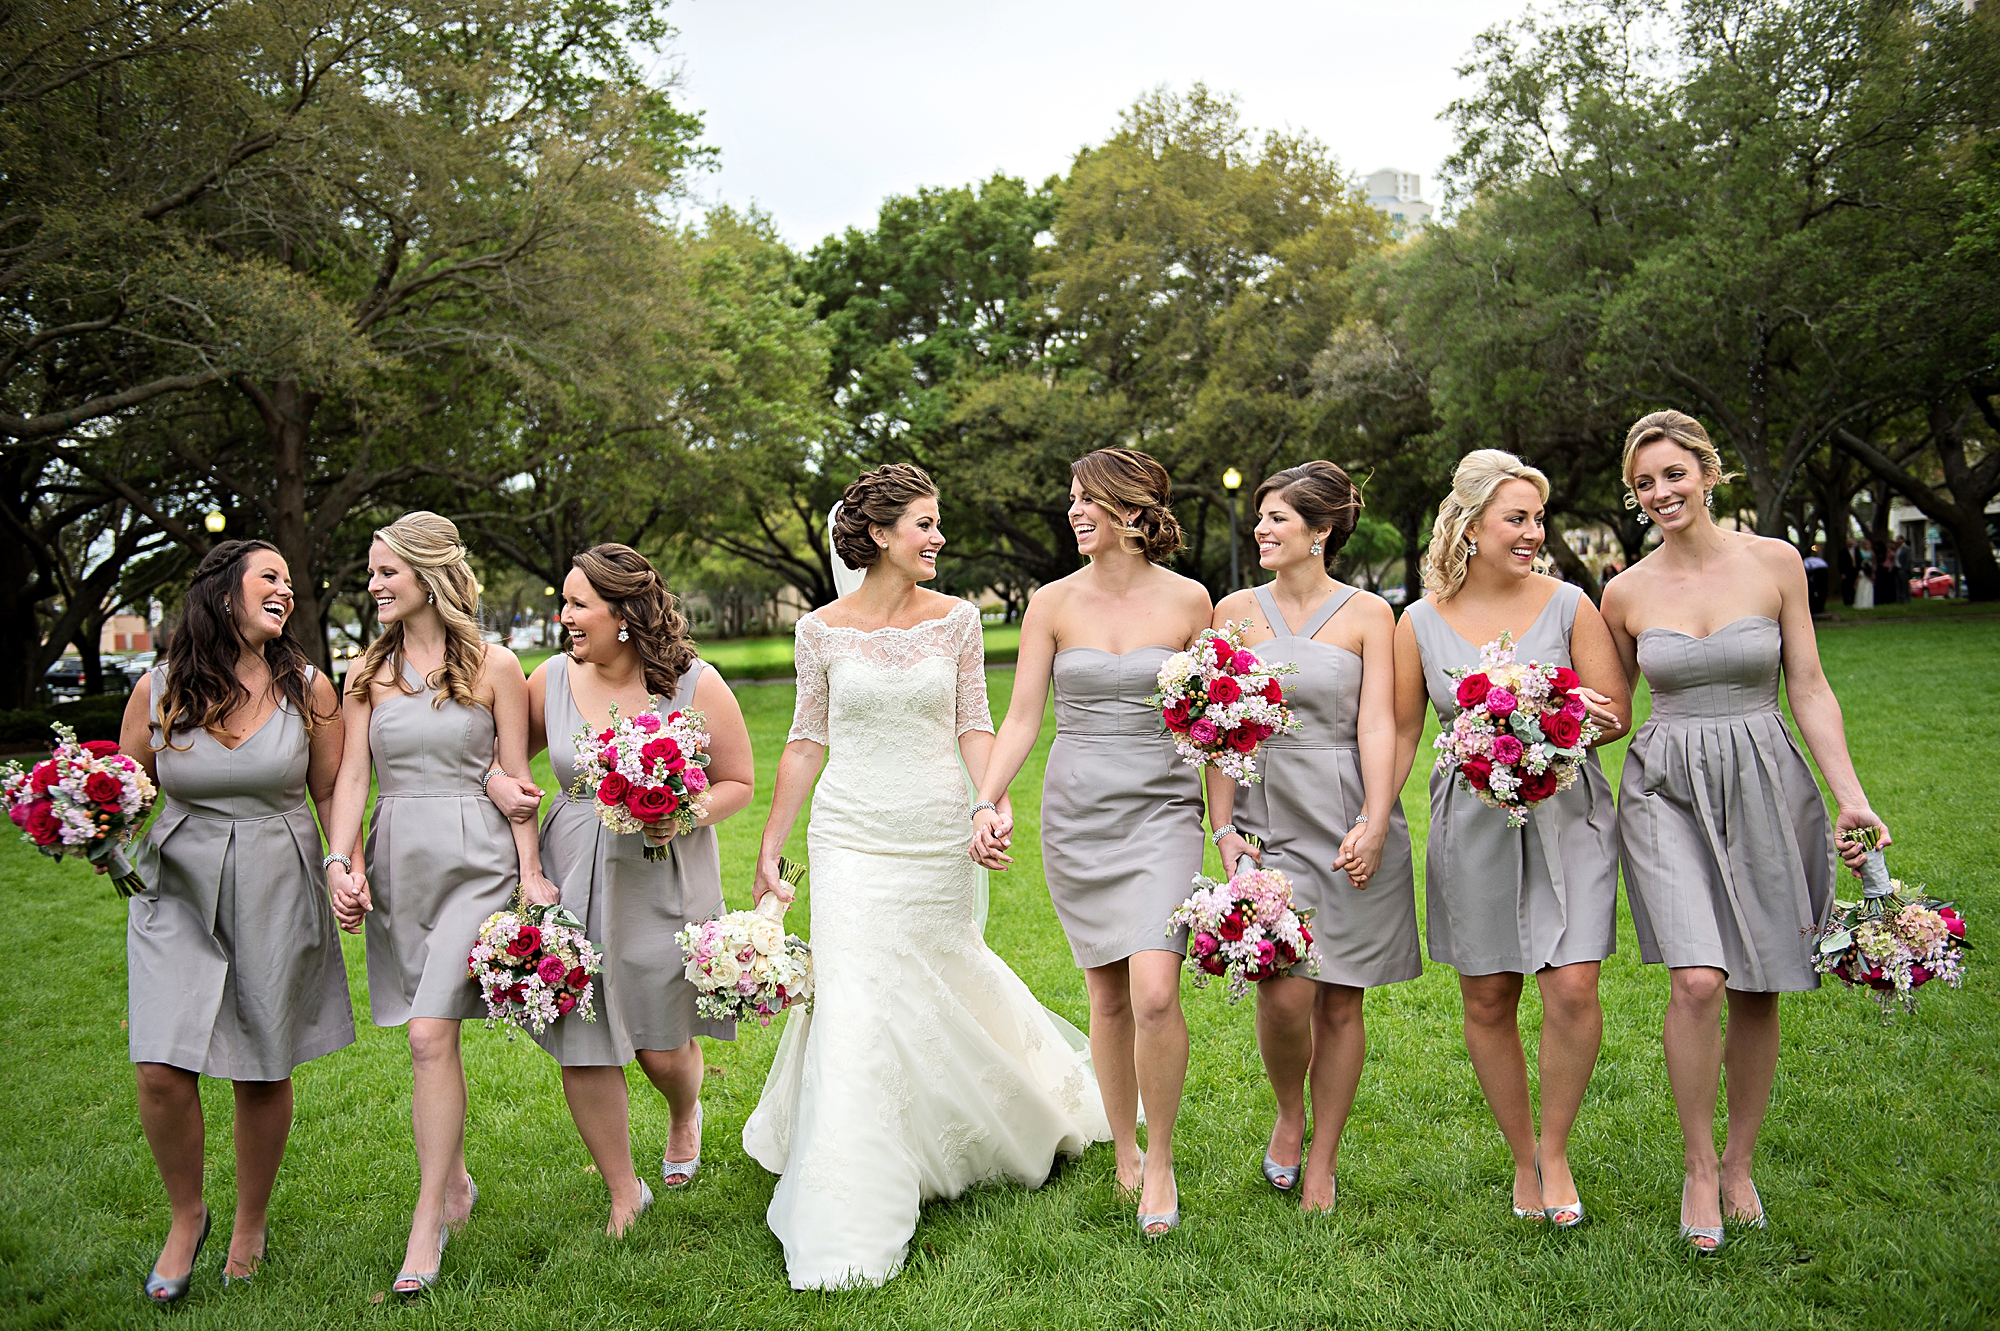 Short bridesmaid dress ideas